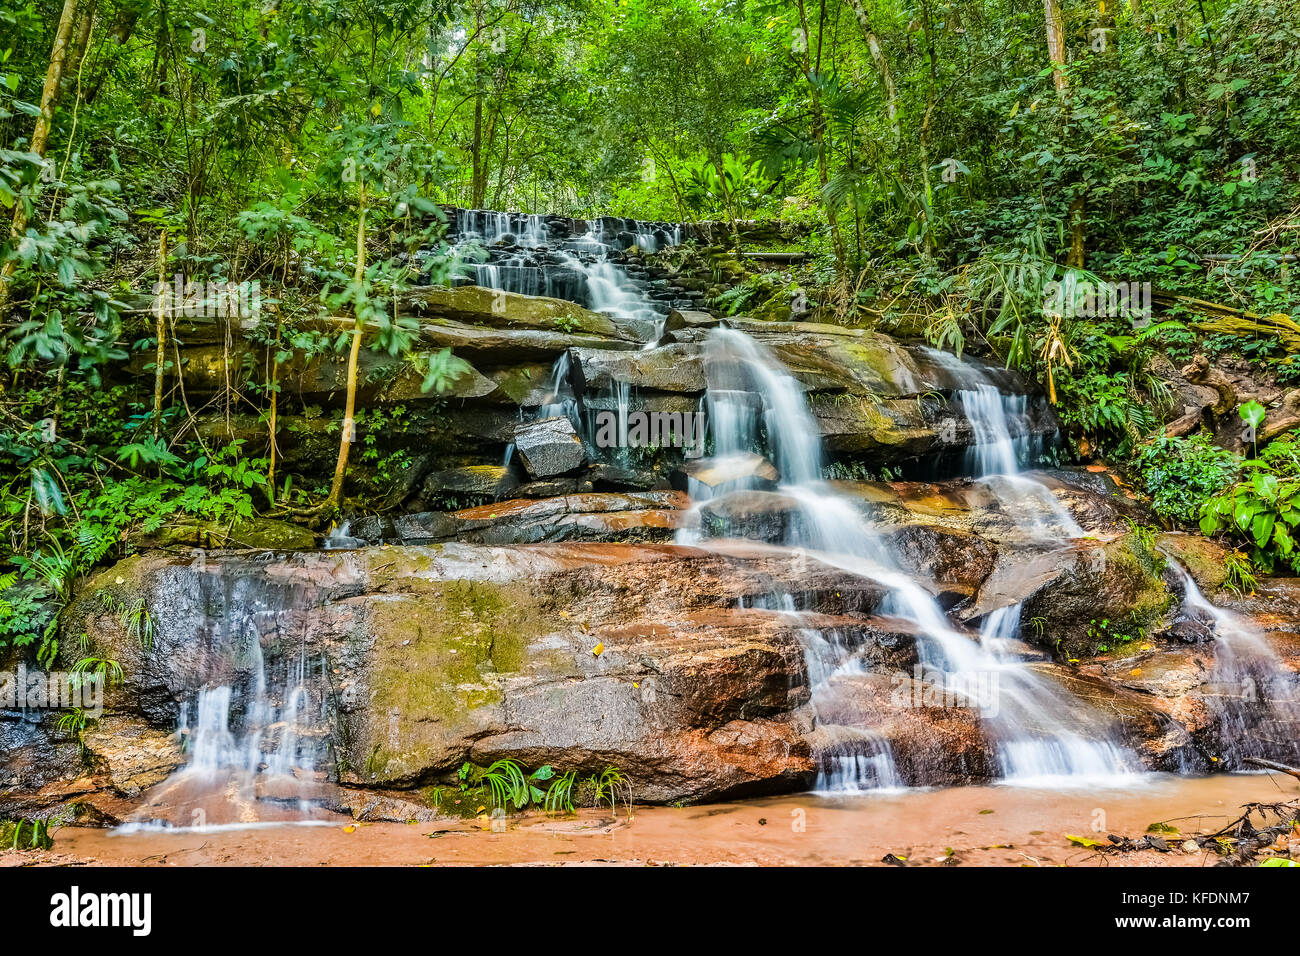 Belle cascade de Doi Suthep, Chiang Mai, Thaïlande, Asie Photo Stock